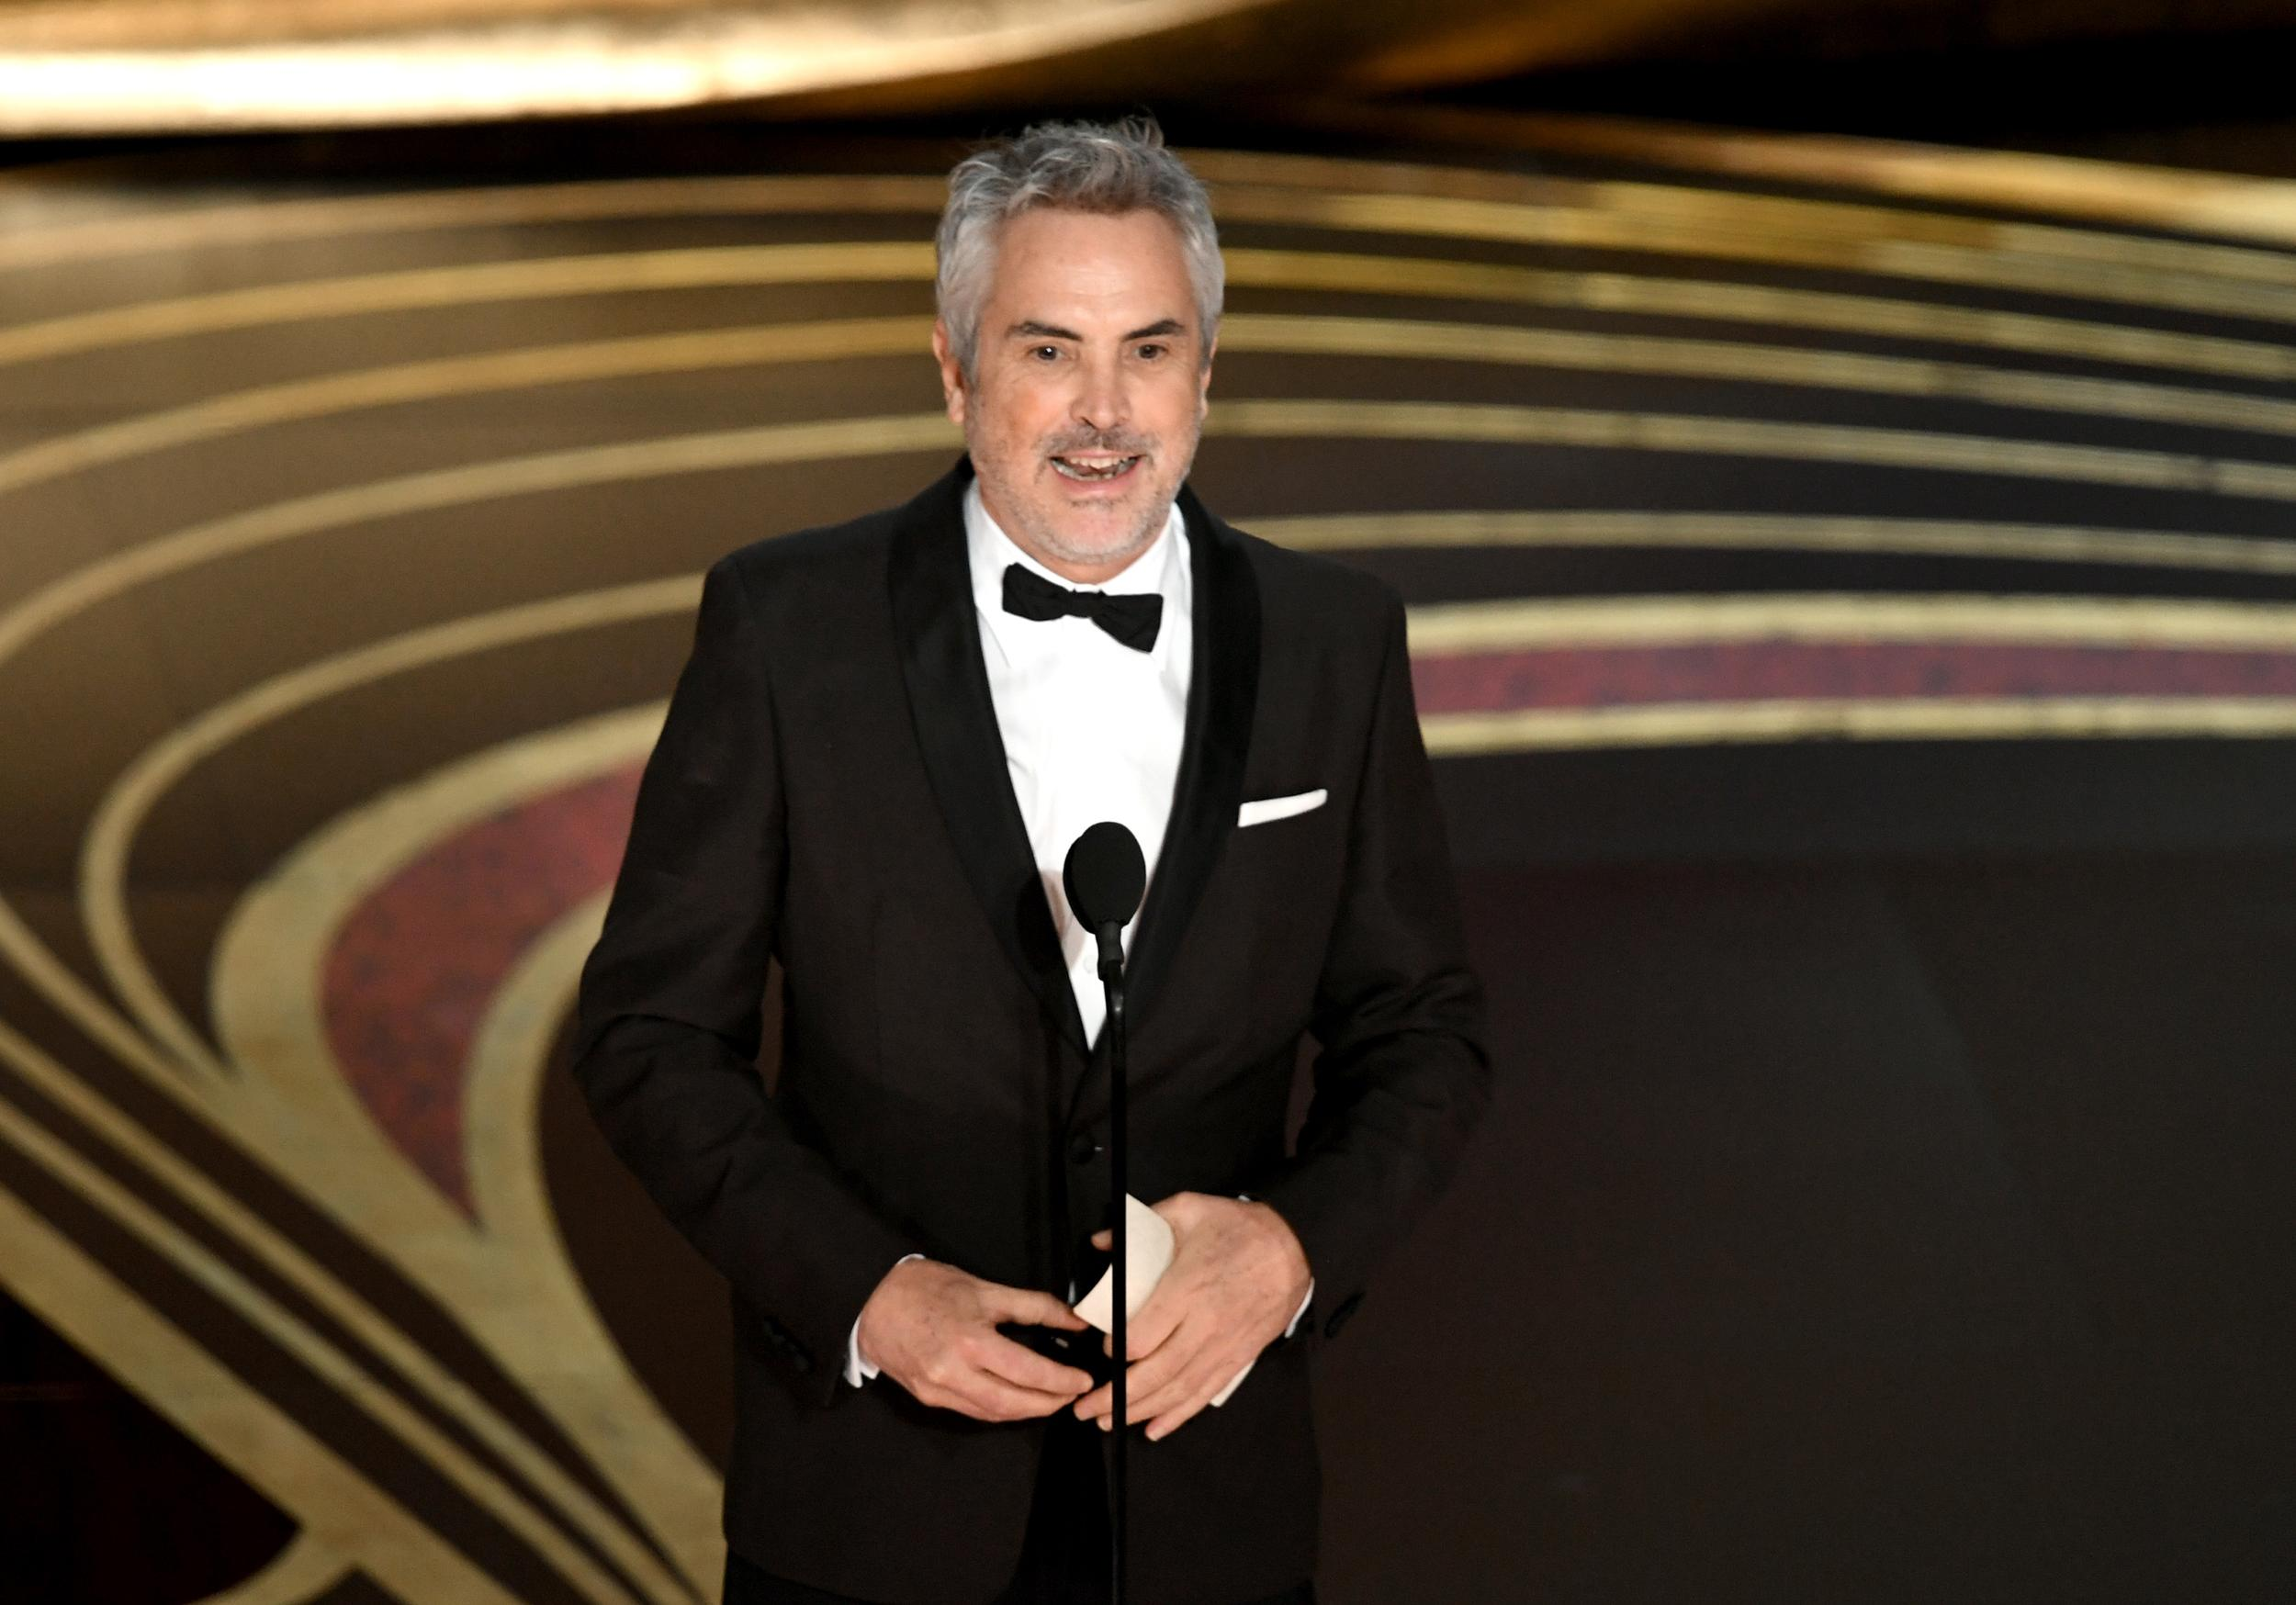 HOLLYWOOD, CALIFORNIA - FEBRUARY 24: Alfonso Cuaron accepts the Best Director award for 'Roma' onstage during the 91st Annual Academy Awards at Dolby Theatre on February 24, 2019 in Hollywood, California. (Photo by Kevin Winter/Getty Images)